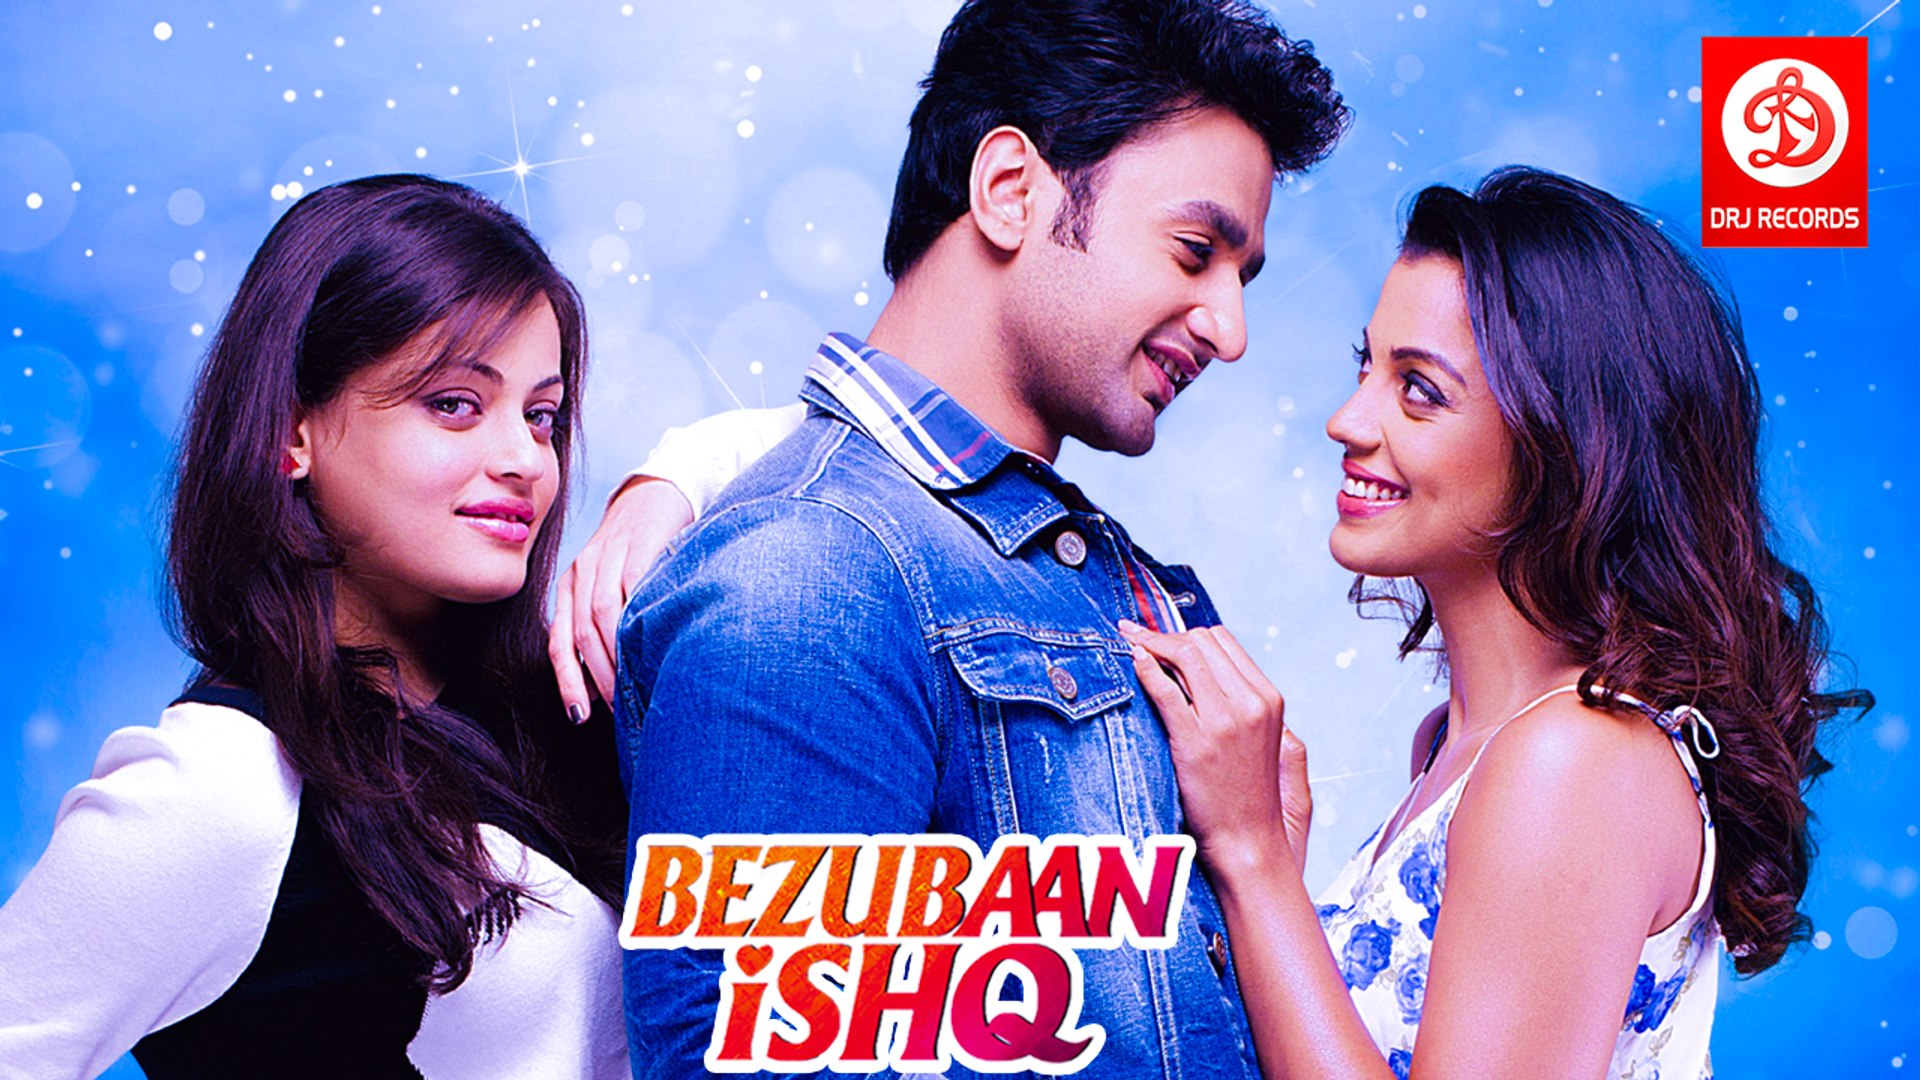 Bezubaan Ishq | Bollywood Romantic Movie | Mugdha Godse, Sneha Ullal, Nishant | Superhit Bollywood M